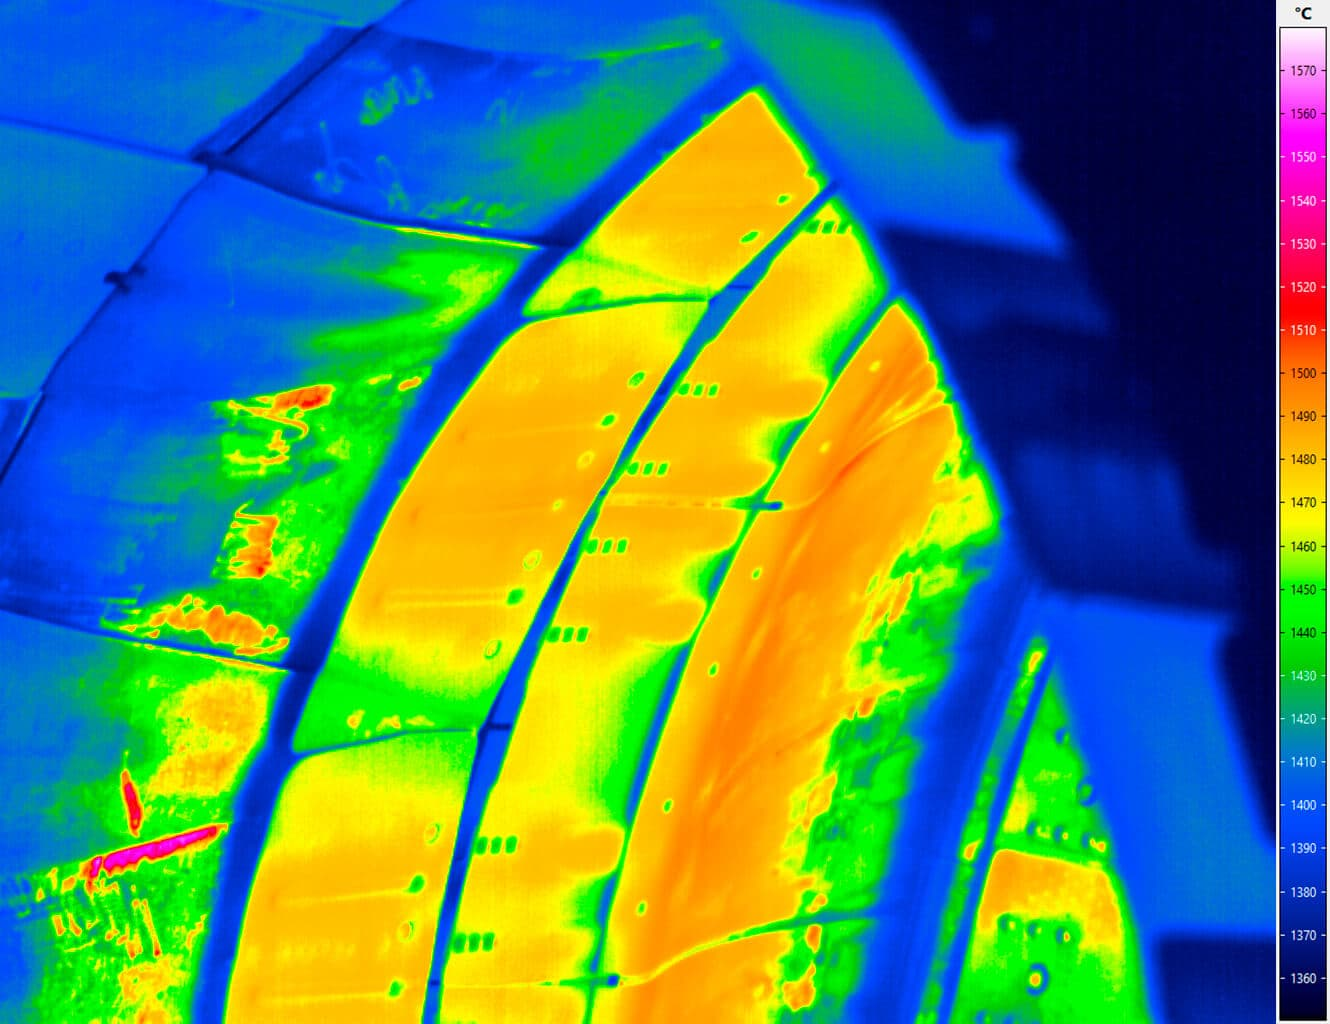 Spectral thermography - Applied combustion